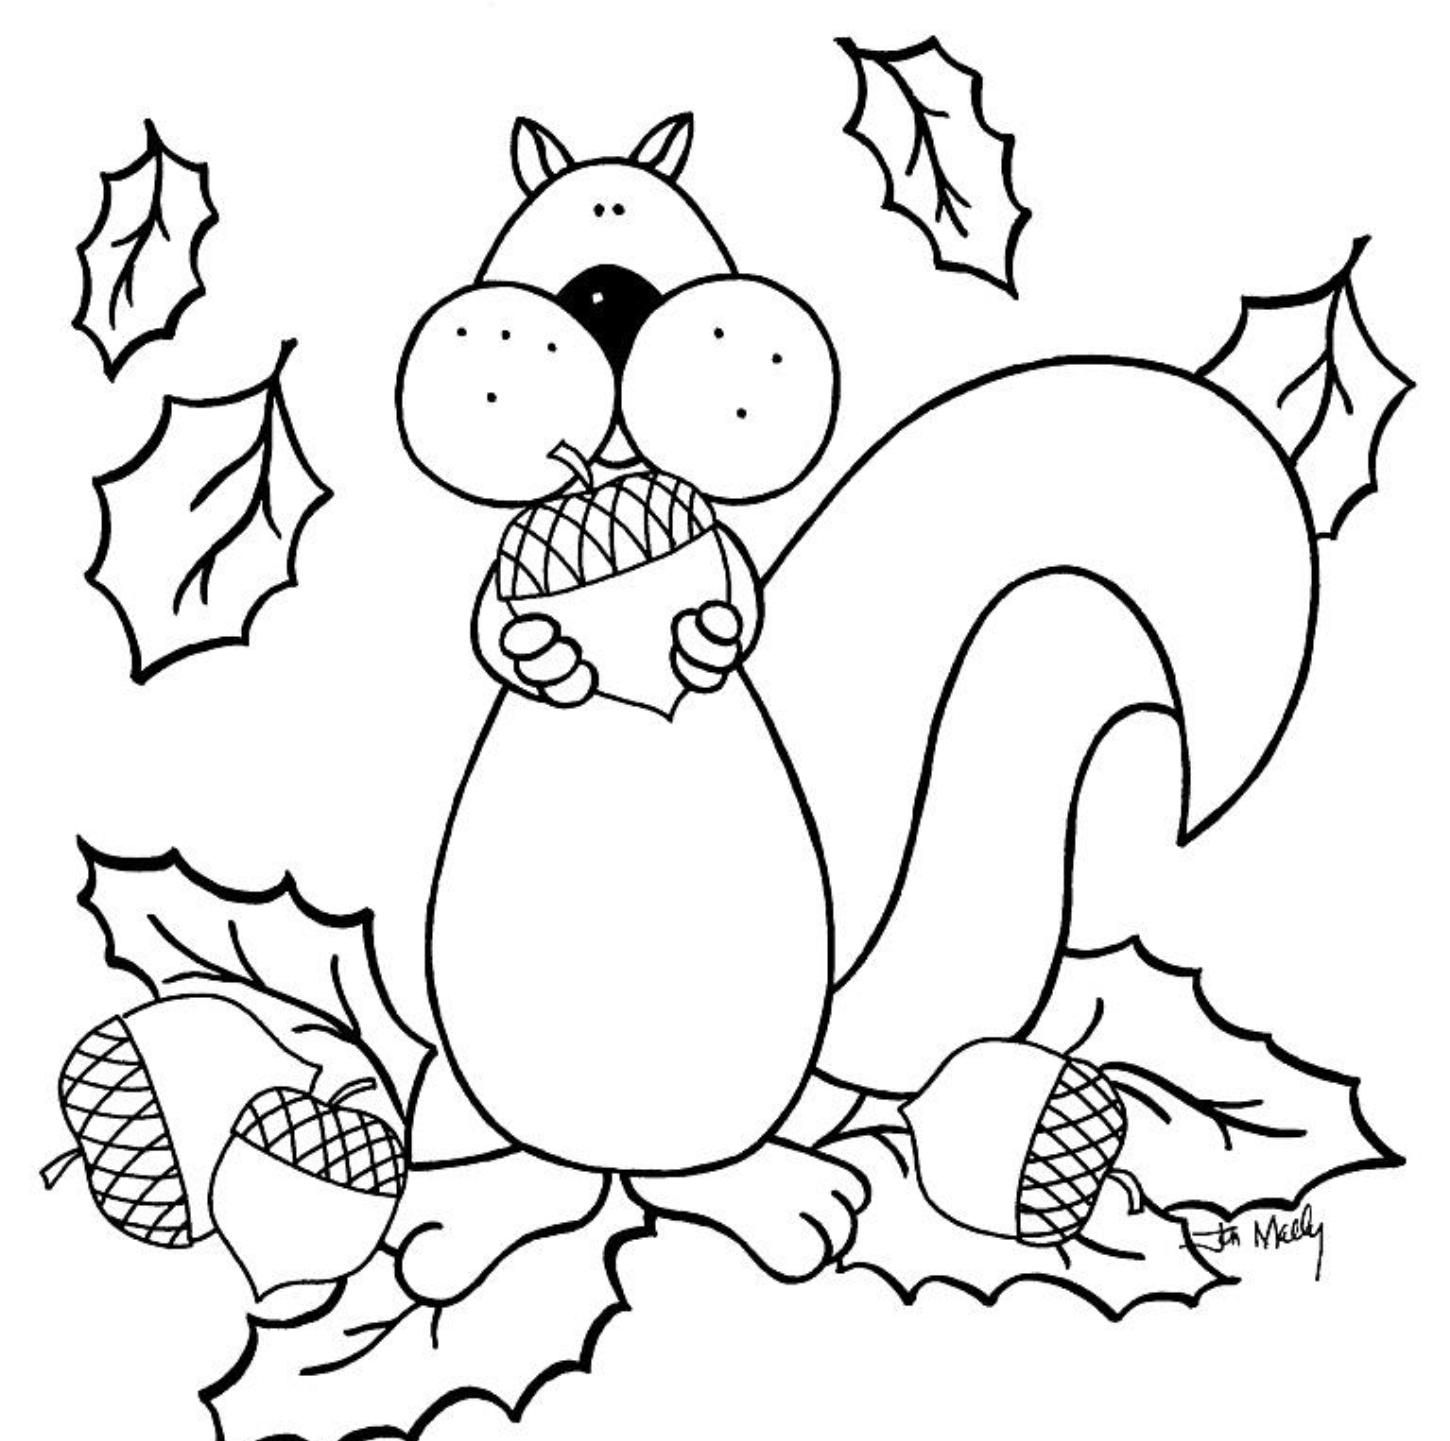 Free coloring pages preschool - Colouring Pages Preschool Preschool Squirrel Coloring Pages With Animal Coloring Pages Of